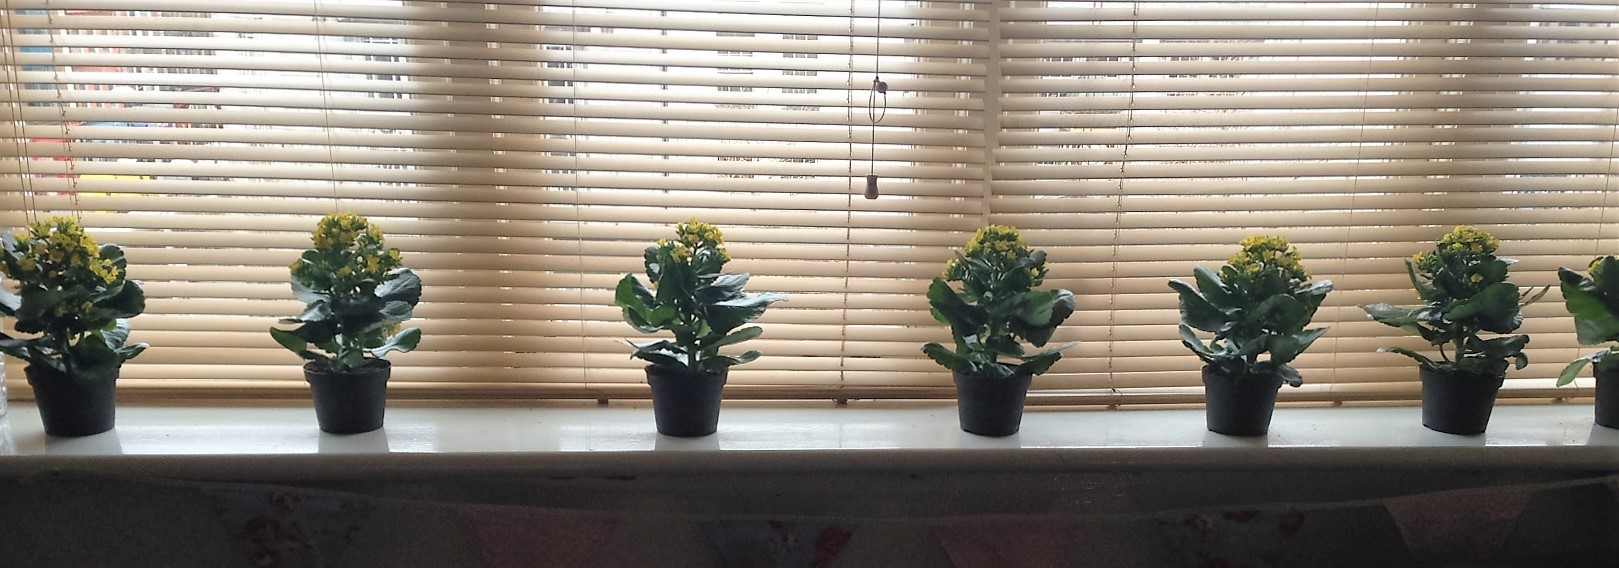 Flower pots along a window sill.